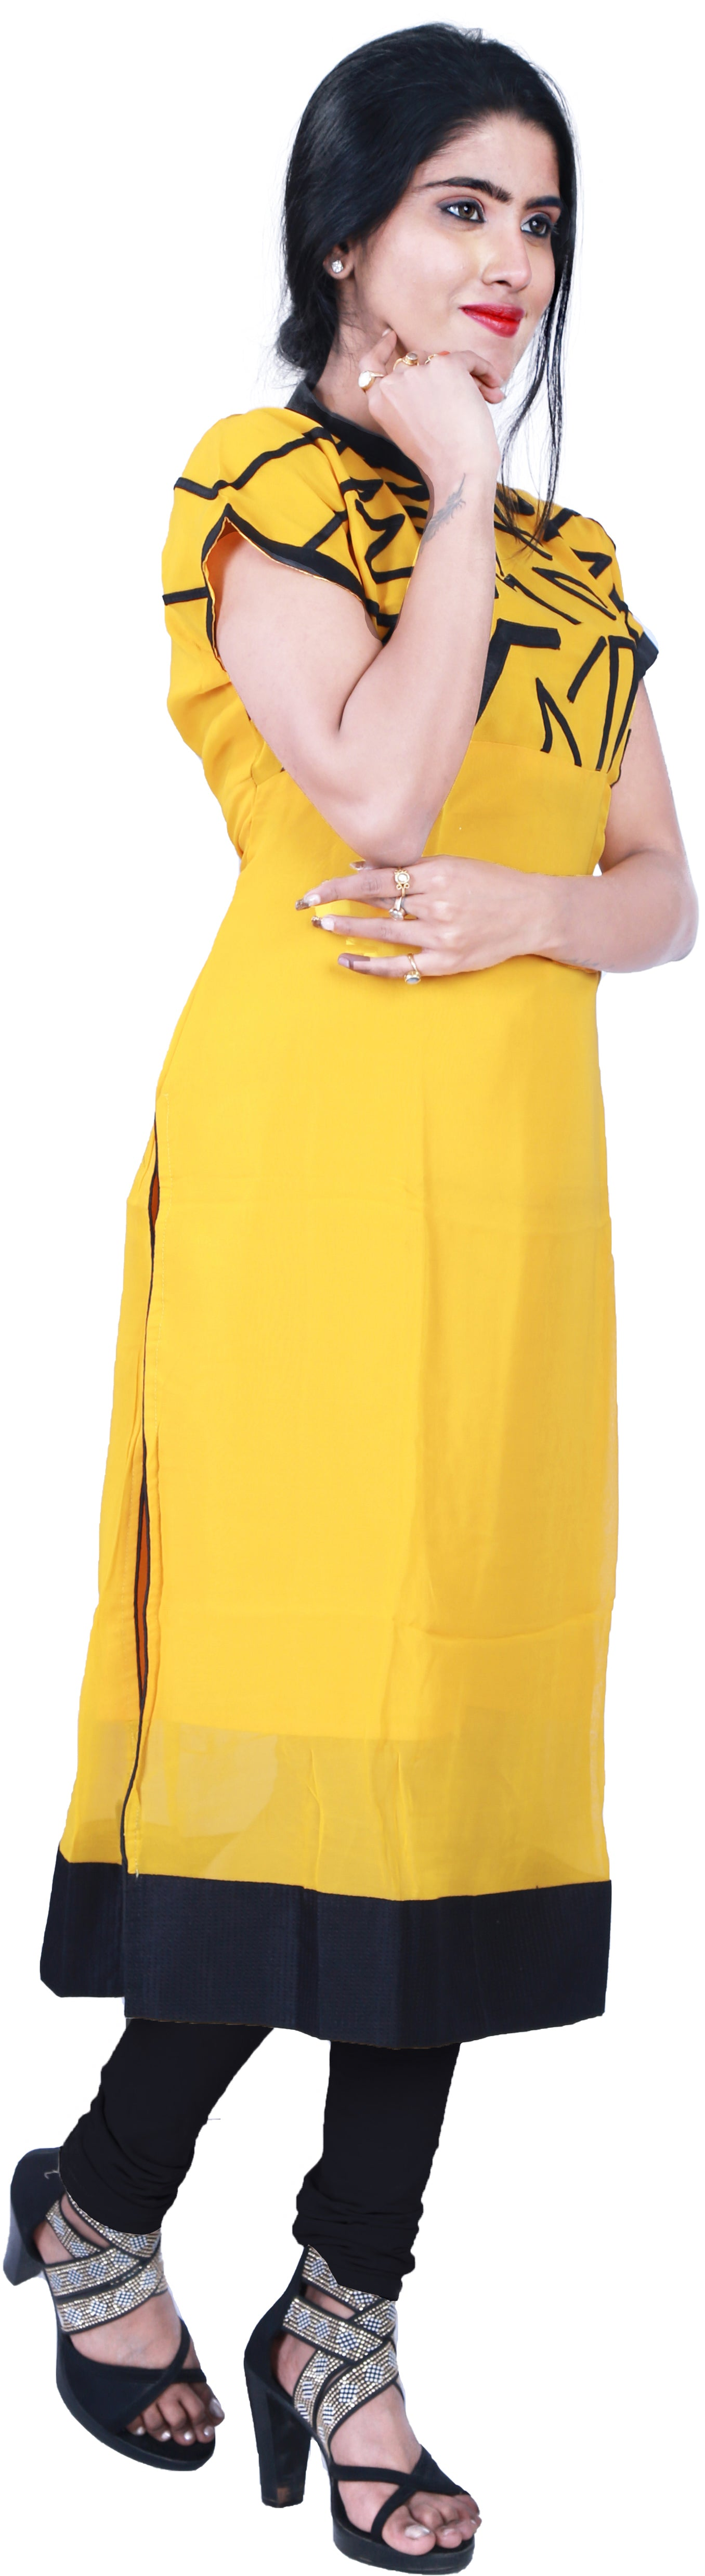 SMSAREE Yellow & Black Designer Casual Partywear Geogette Viscos Applick Hand Embroidery Work Stylish Women Kurti Kurta With Free Matching Leggings A729